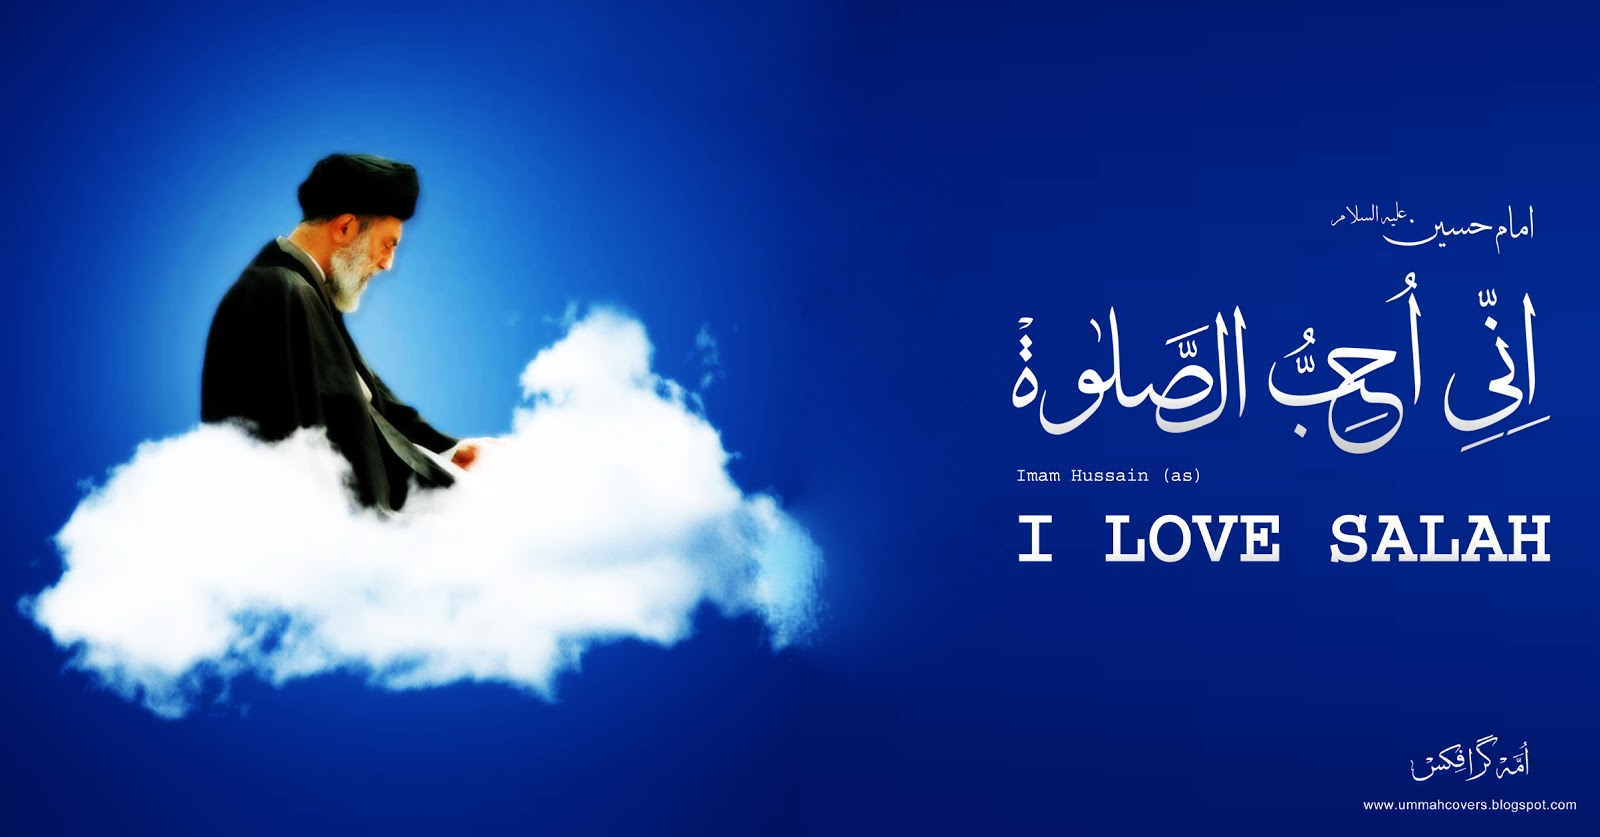 I Hate Love Wallpaper For Fb : UMMAH Graphics: I Love Salah ( Imam Hussain a.s ) Wallpaper + FB cover